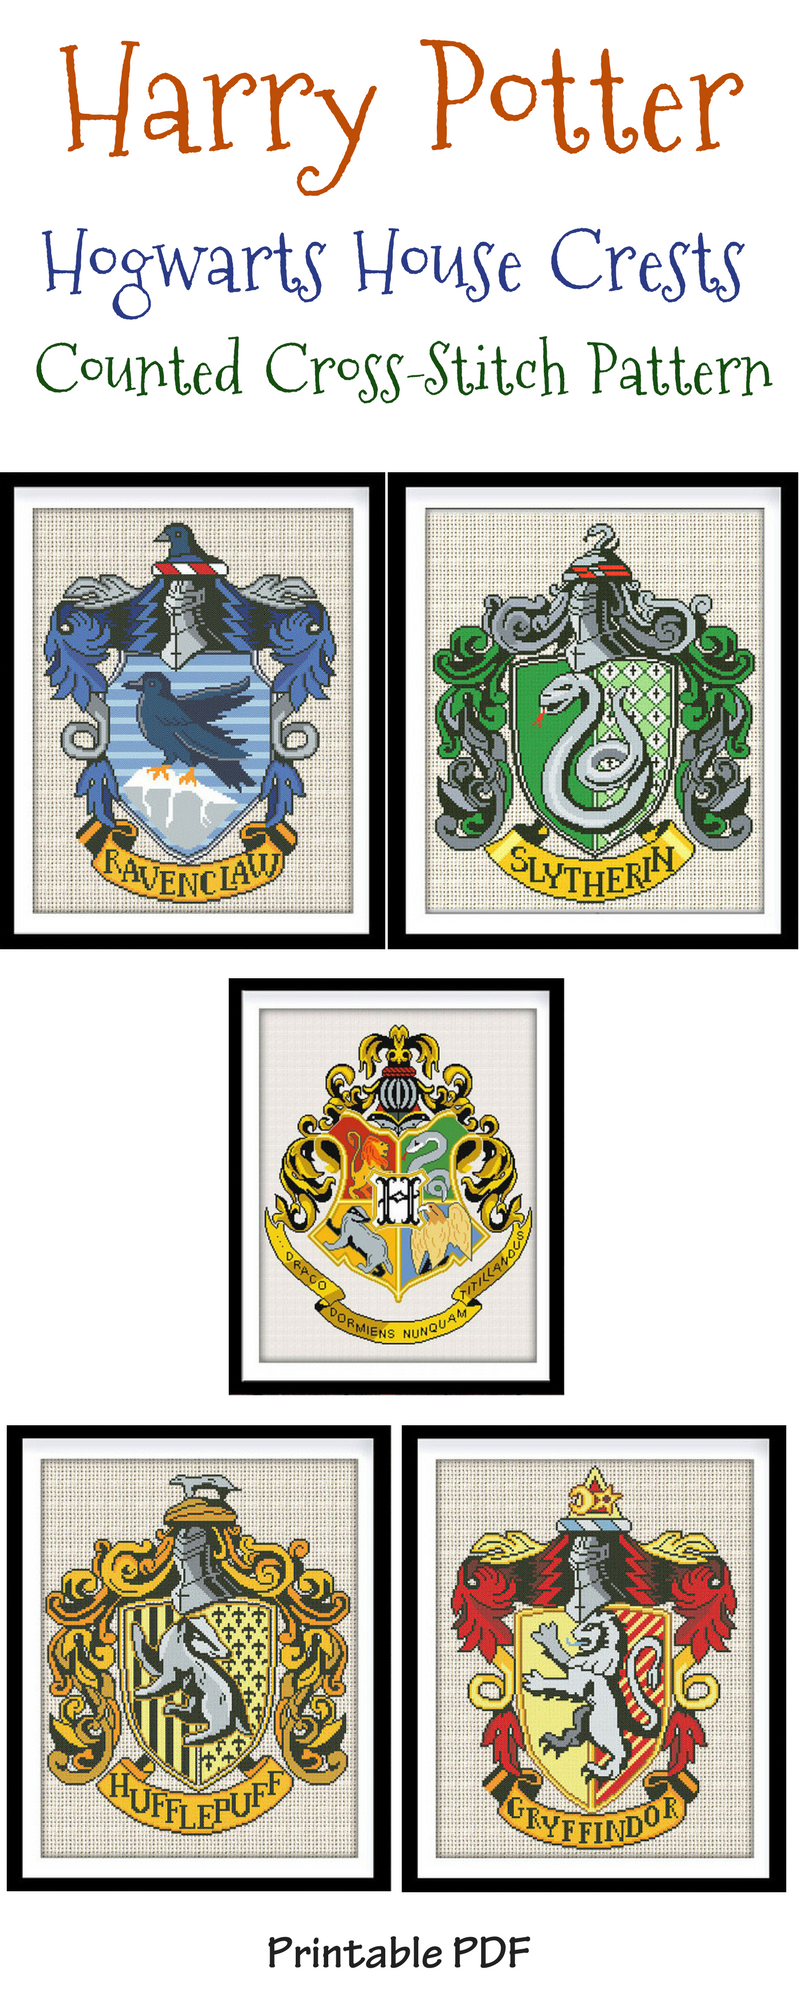 Show Your Hogwarts School Spirit With This Counted Cross Stitch School Crest Patt Harry Potter Cross Stitch Pattern Cross Stitch Patterns Cross Stitch Samplers